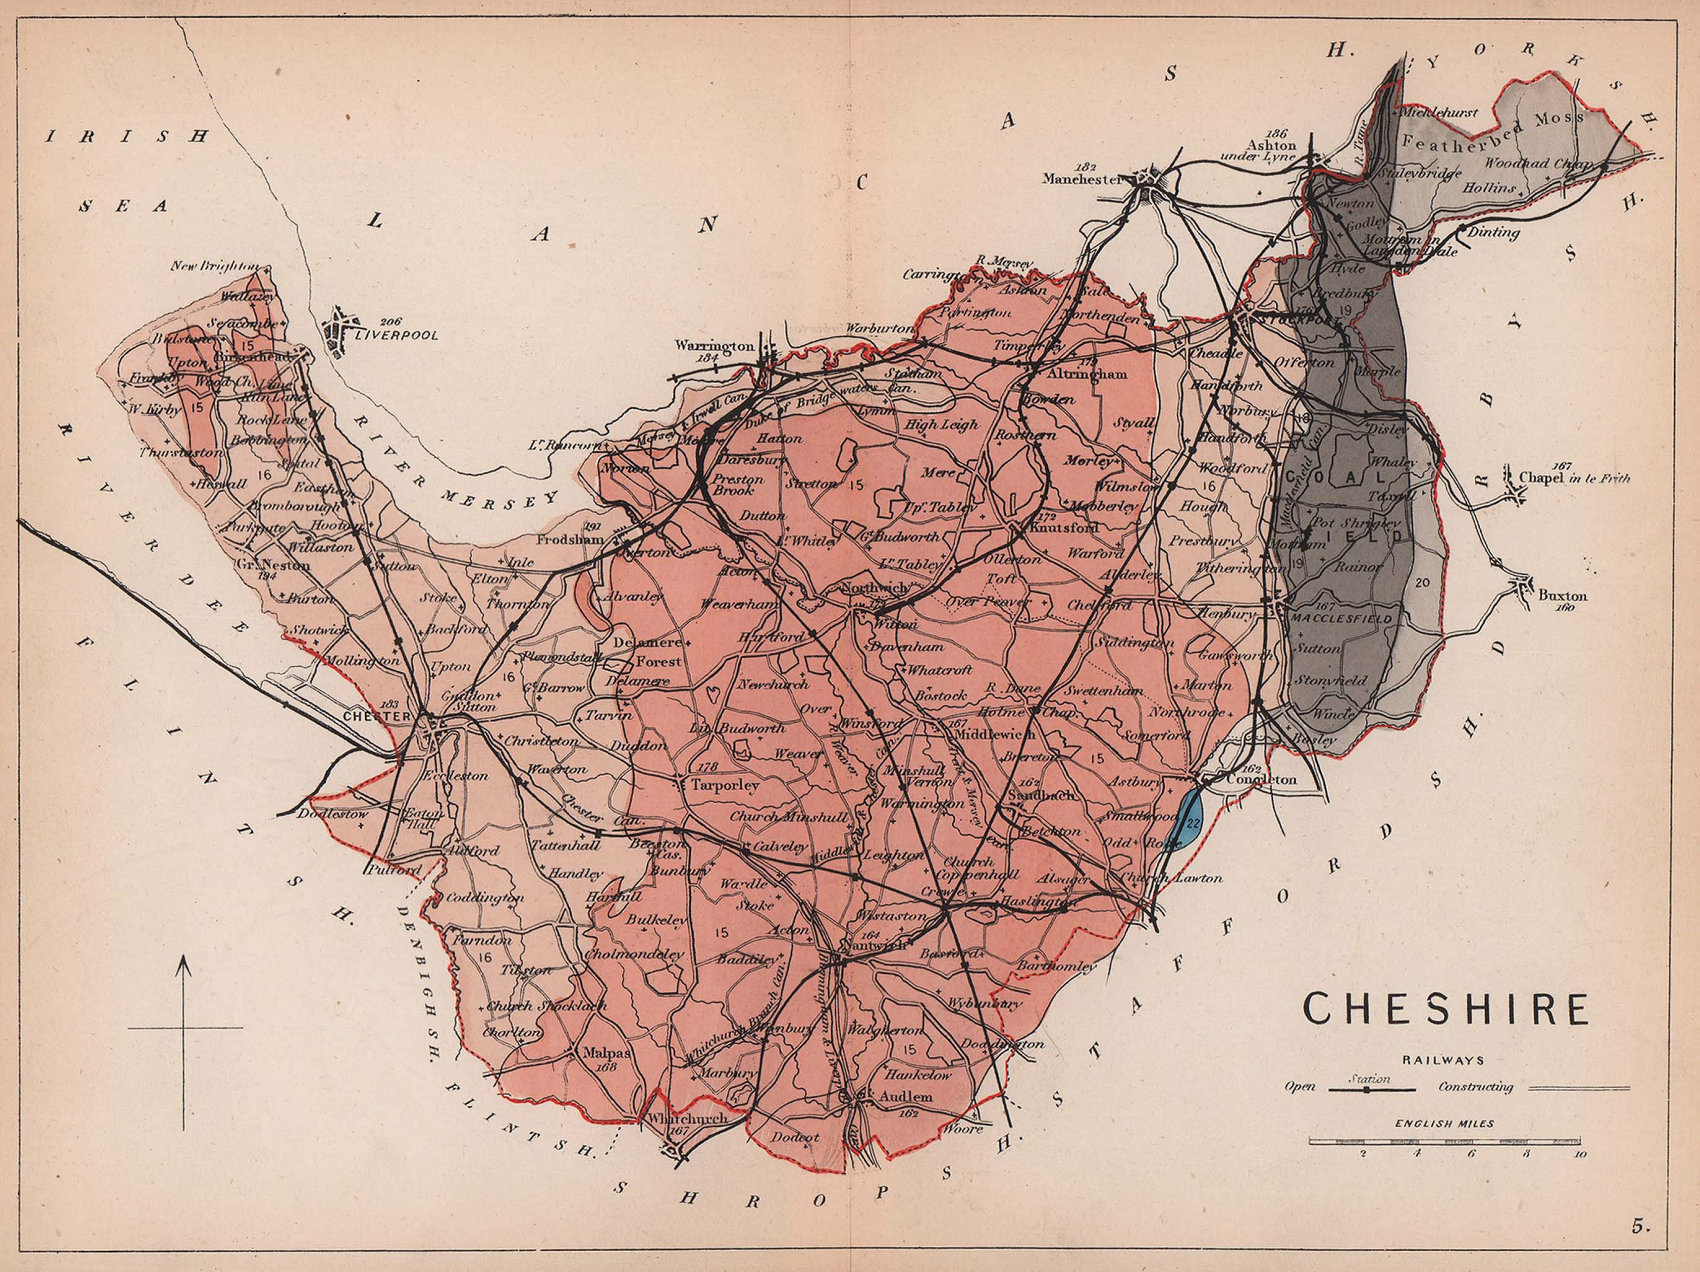 CHESHIRE antique geological county map by James Reynolds 1864